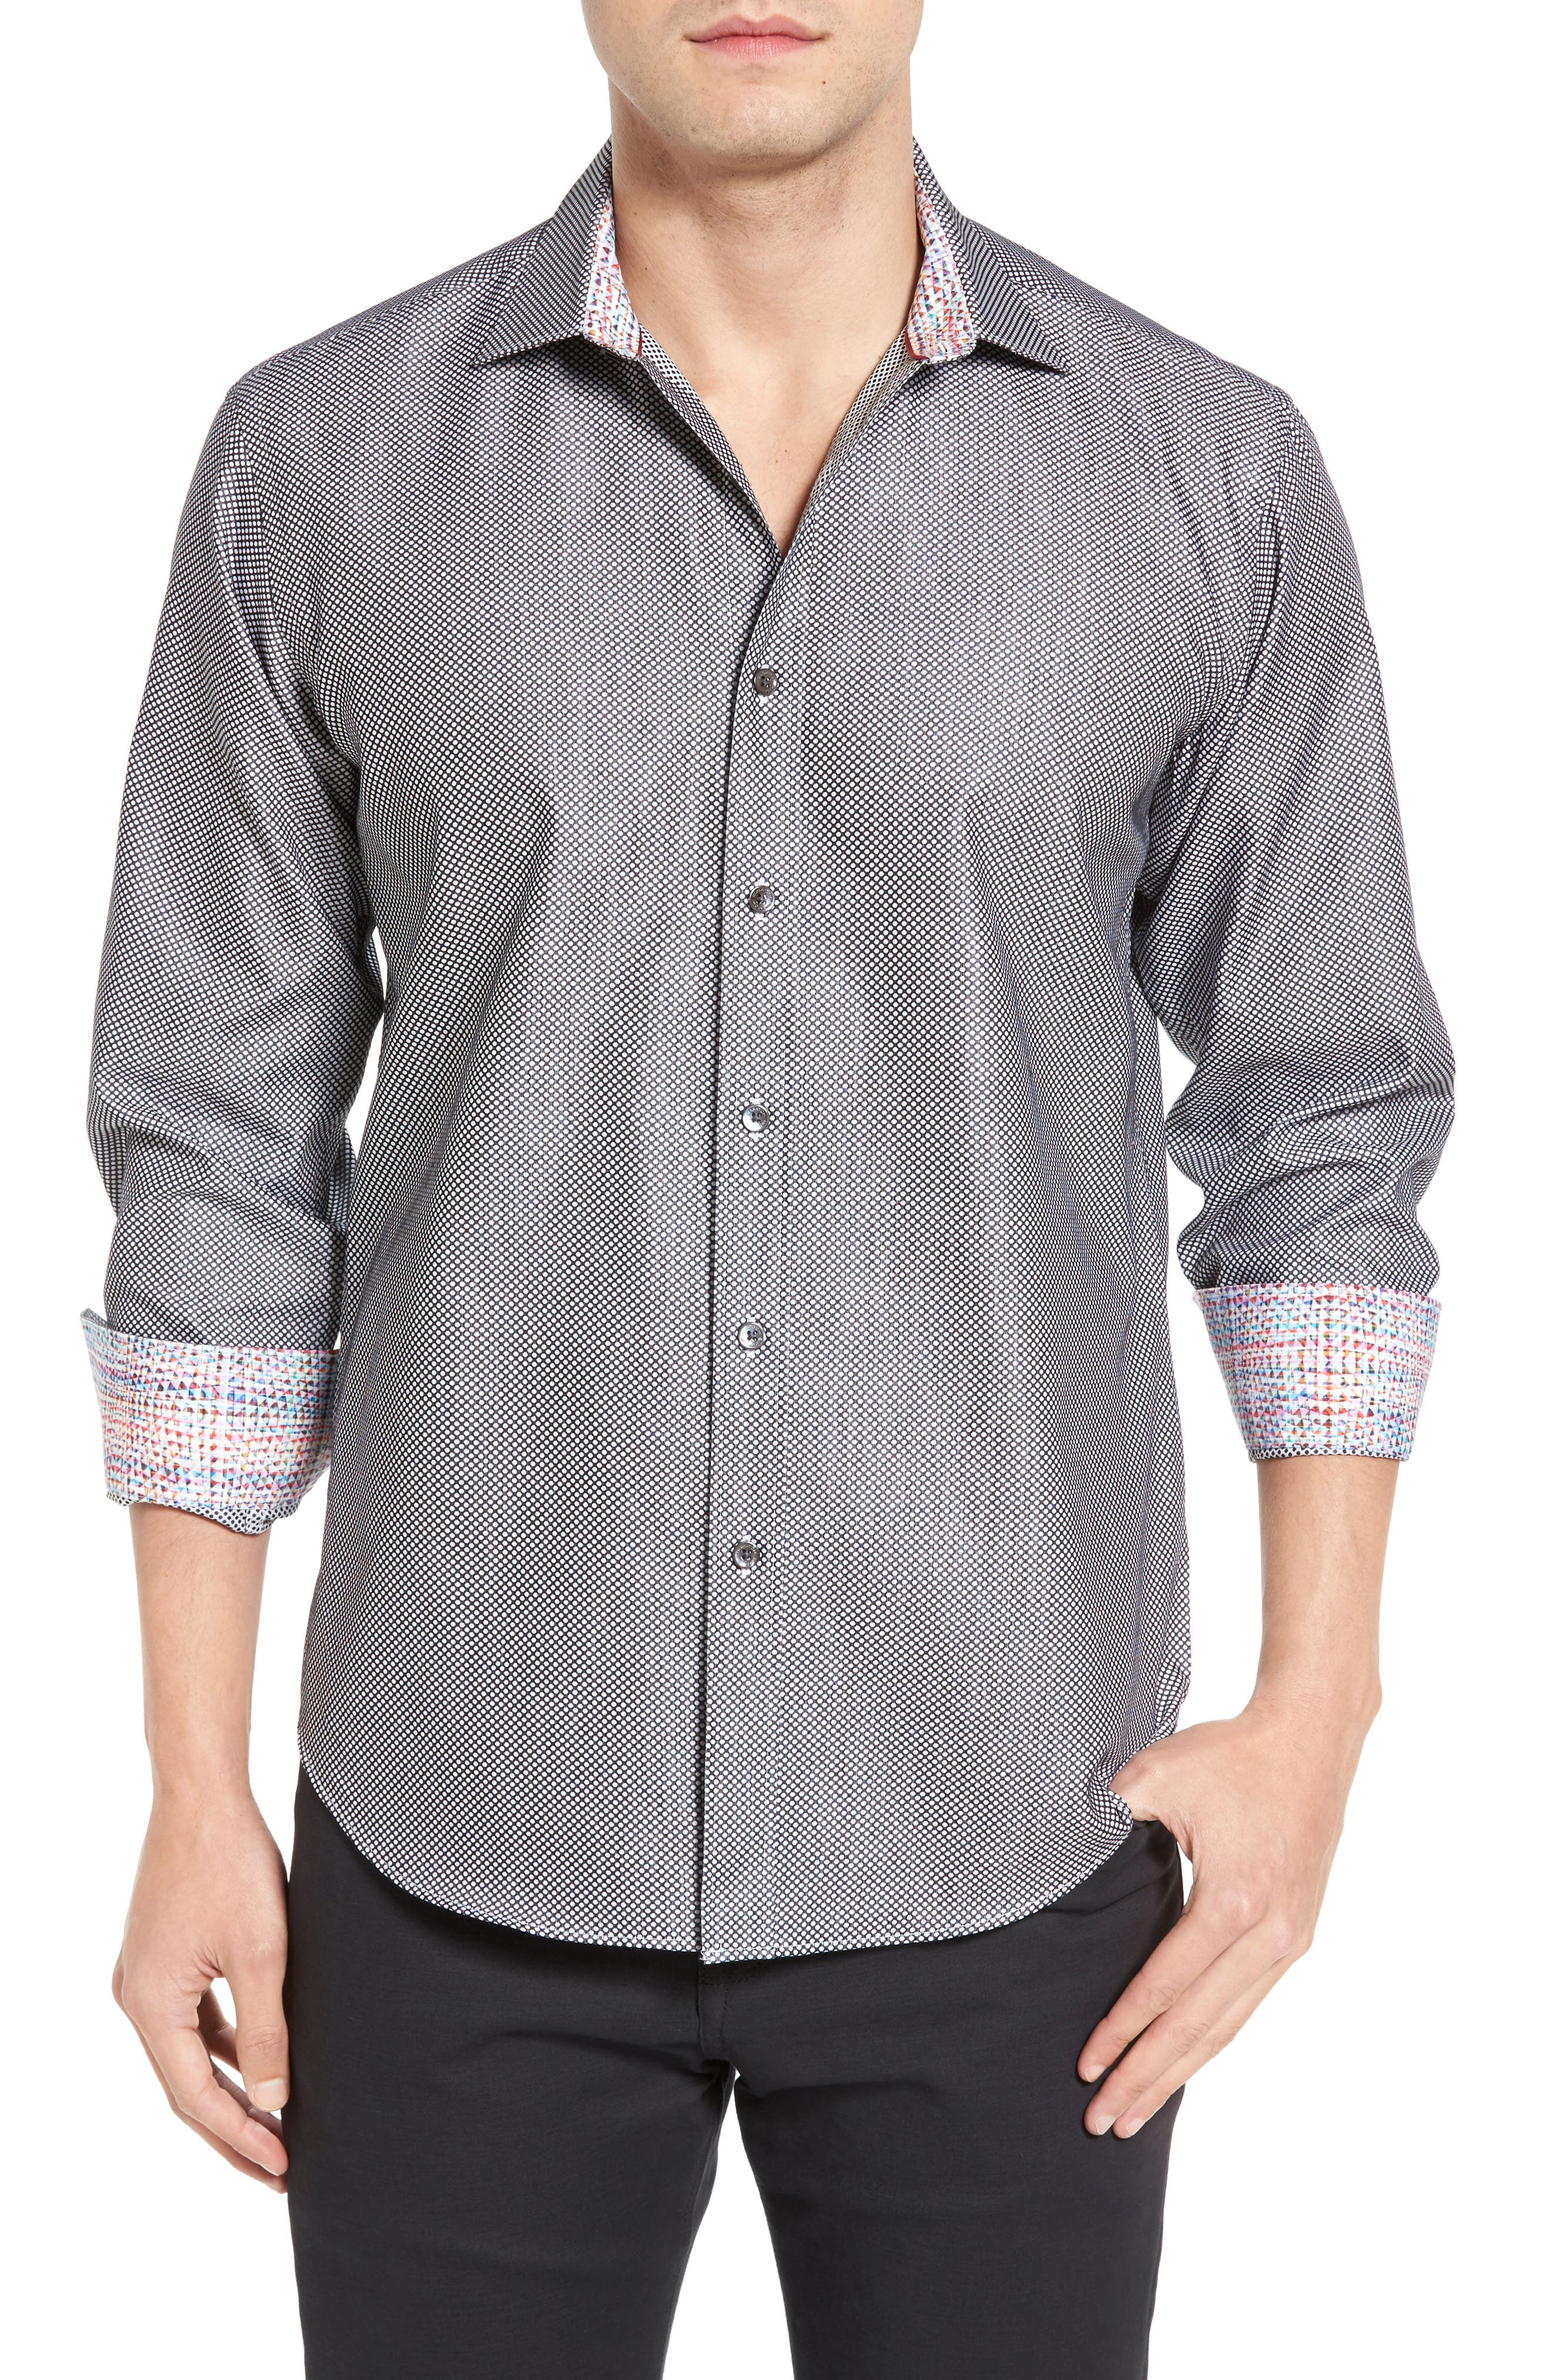 Alternate Image 1 Selected - Bugatchi Shaped Fit Textured Sport Shirt